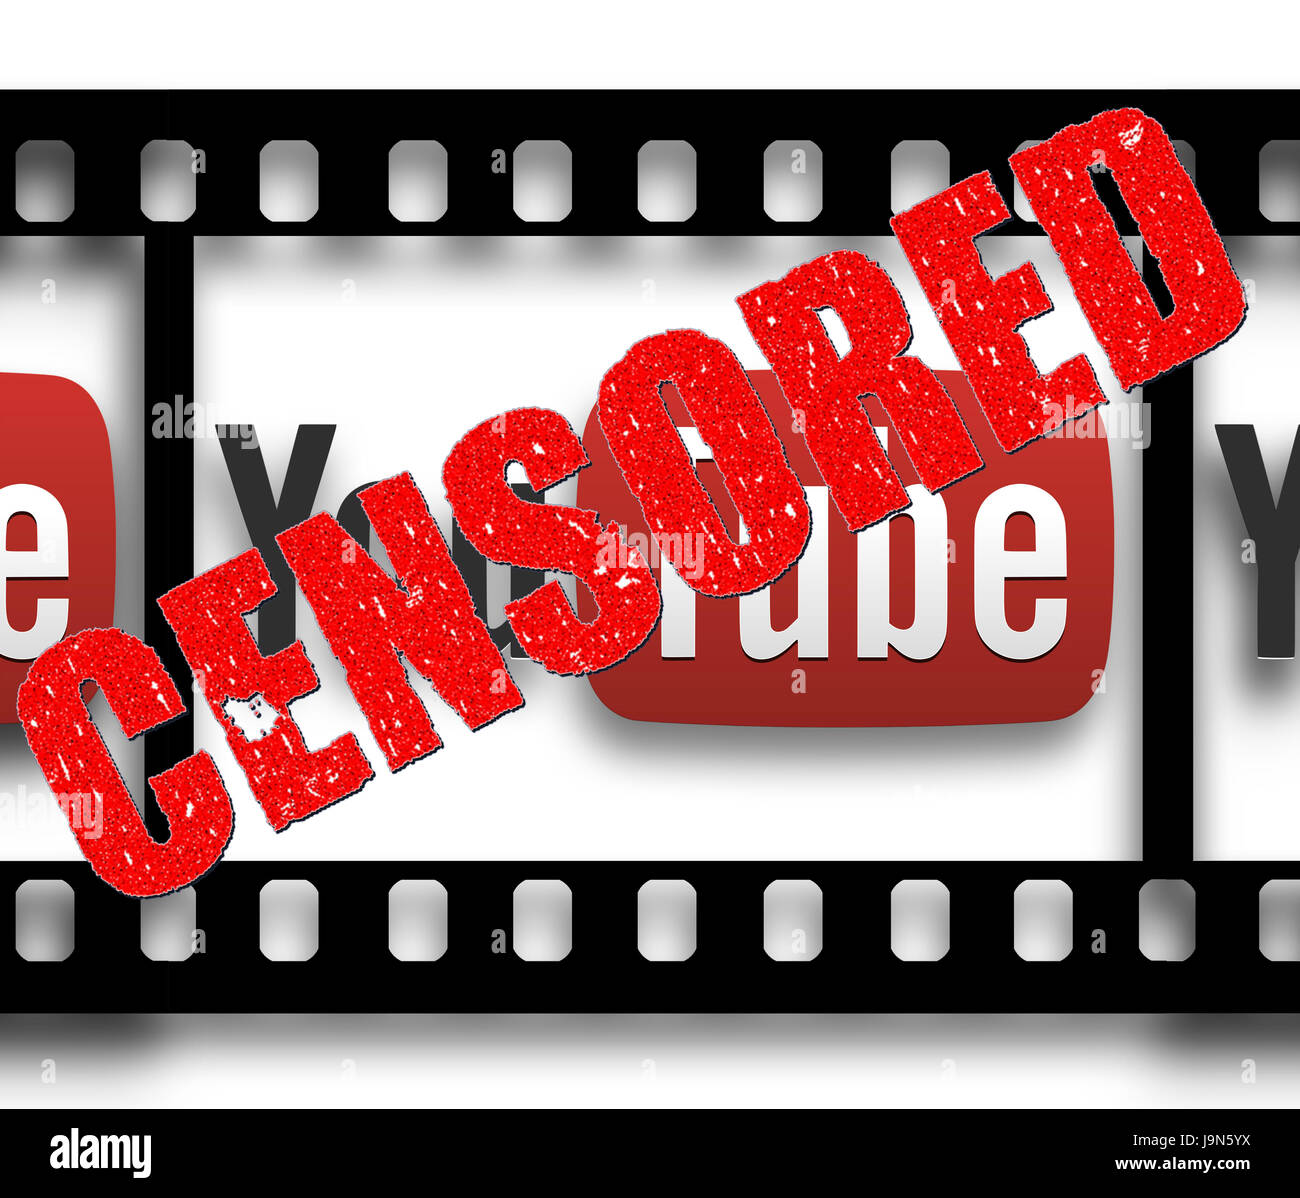 Youtube Logo with the word Censored over it - Stock Image